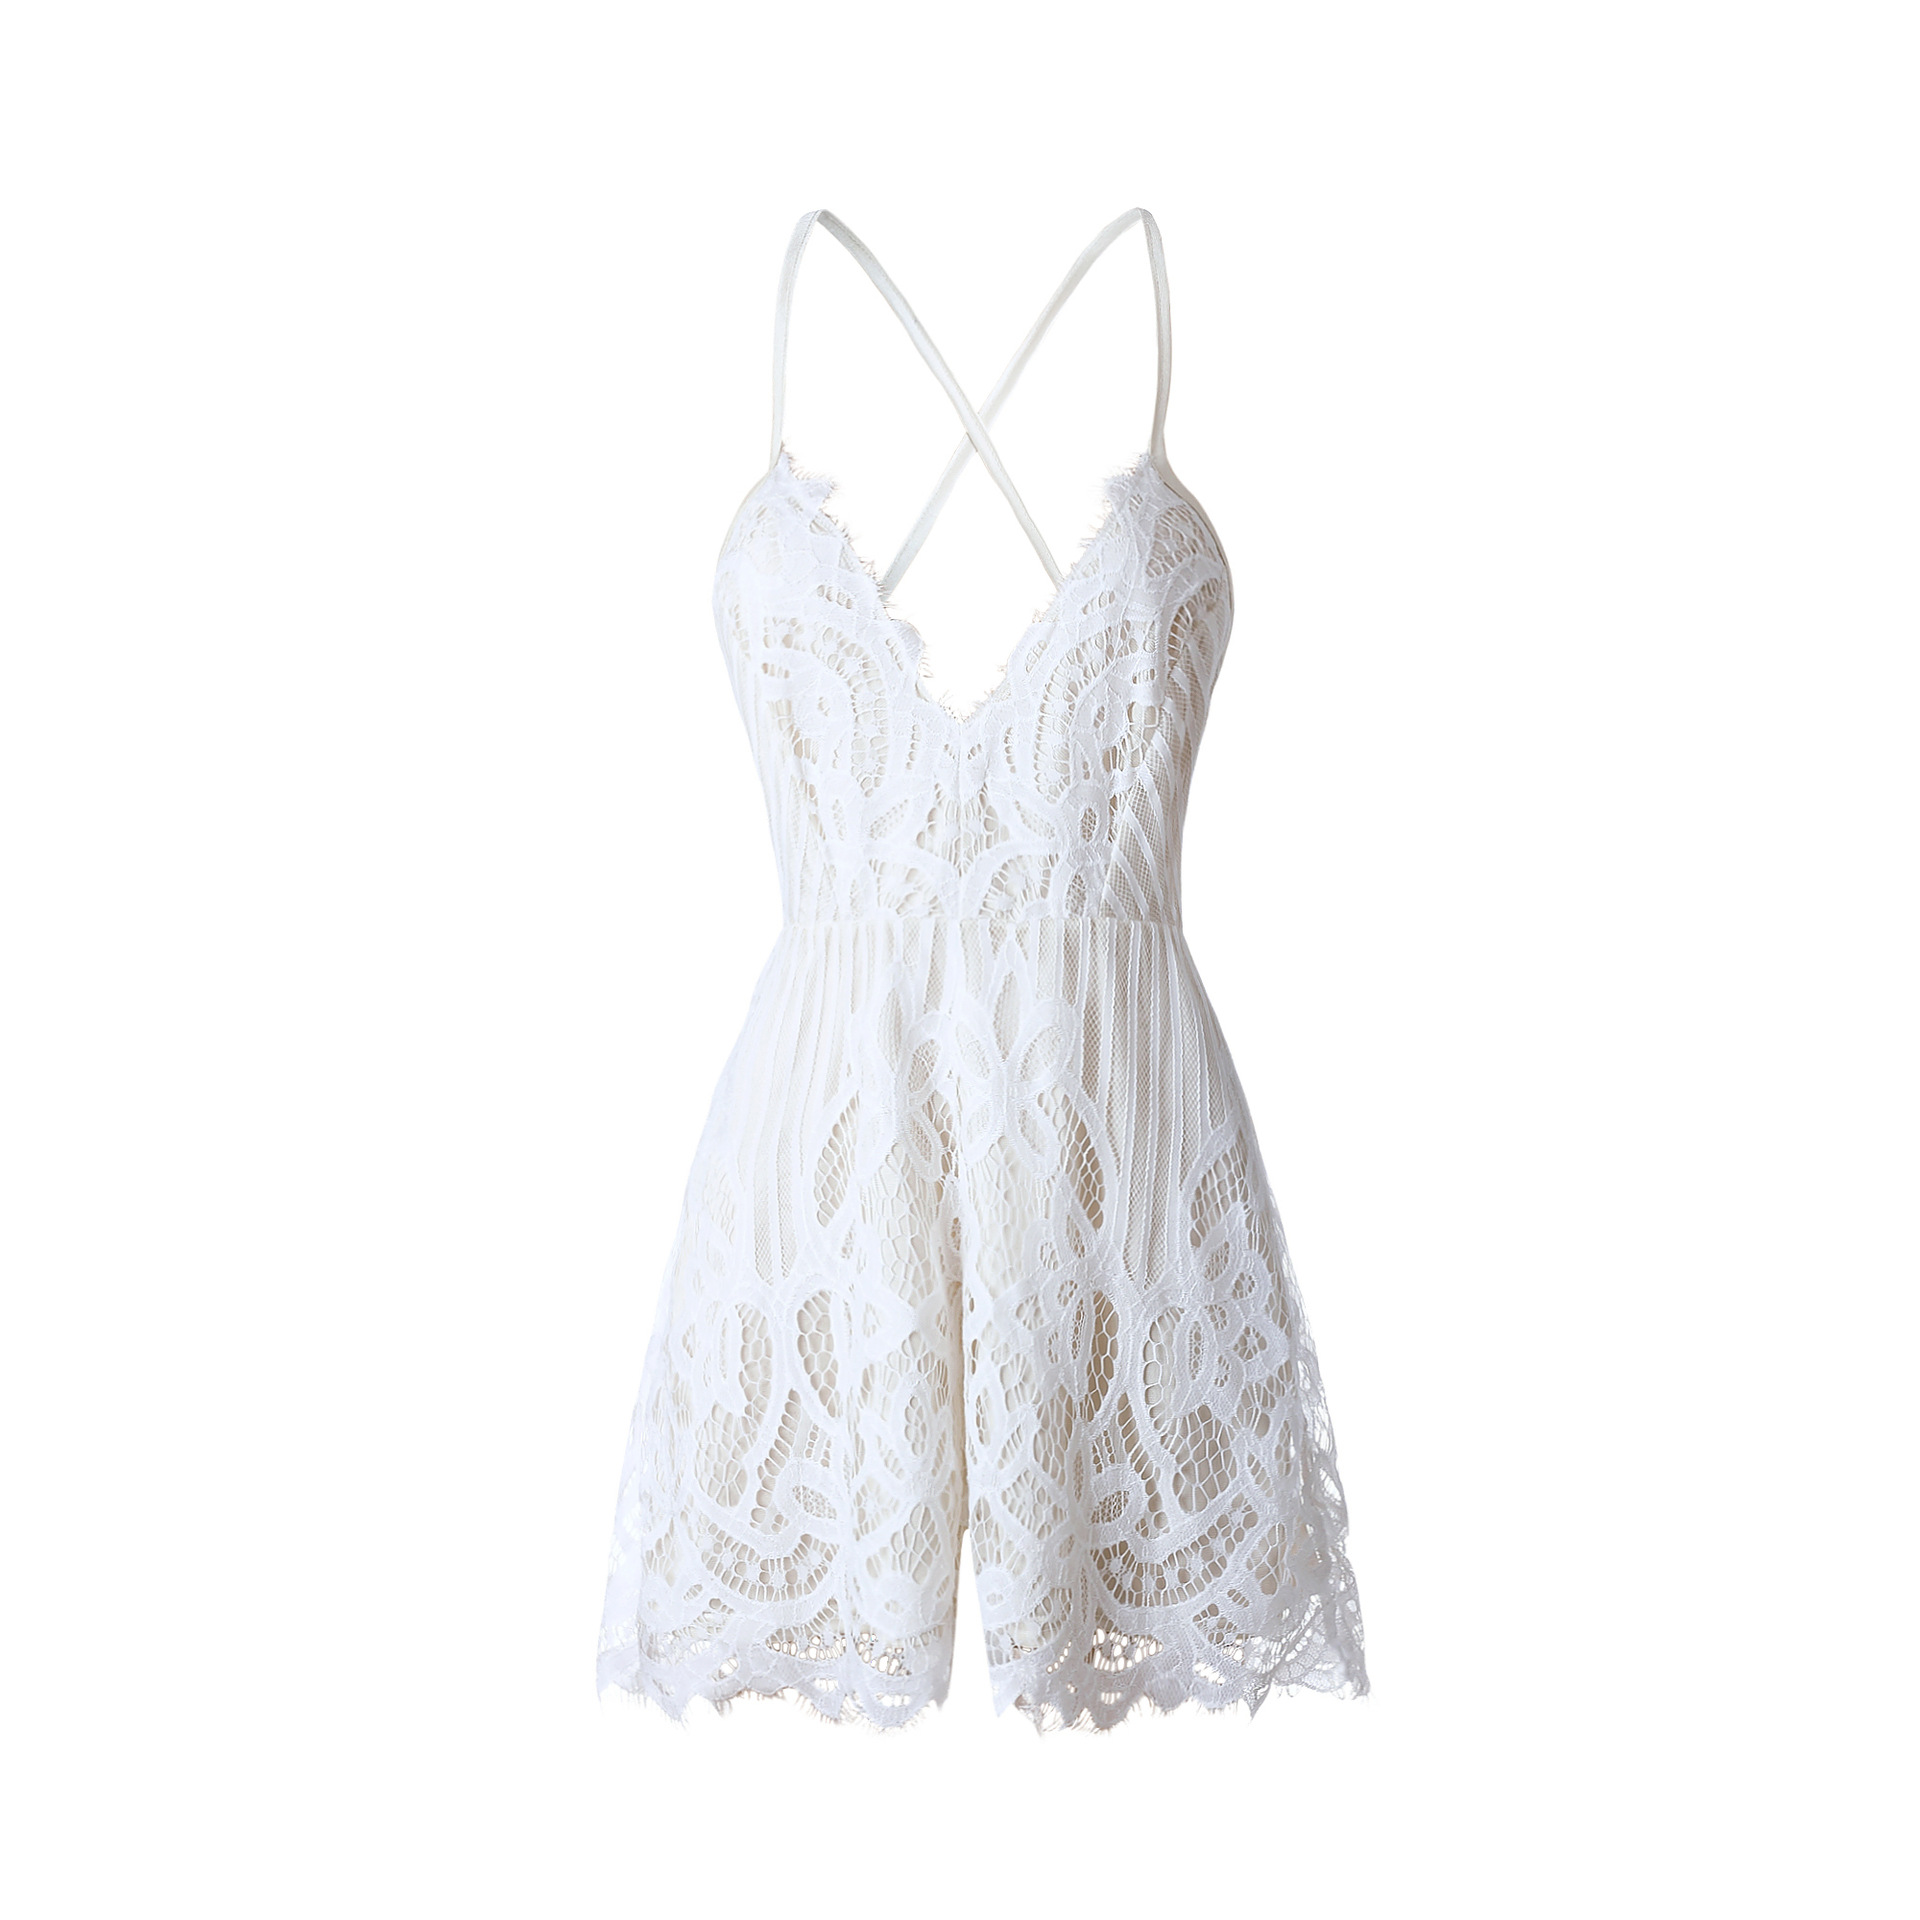 bf0b5f36d076 2017 Fashion Women Strap V Neck Playsuits Summer Sleeveless White Lace  Jumpsuits One Piece Rompers Lovely Girls Overalls. USD 22.99